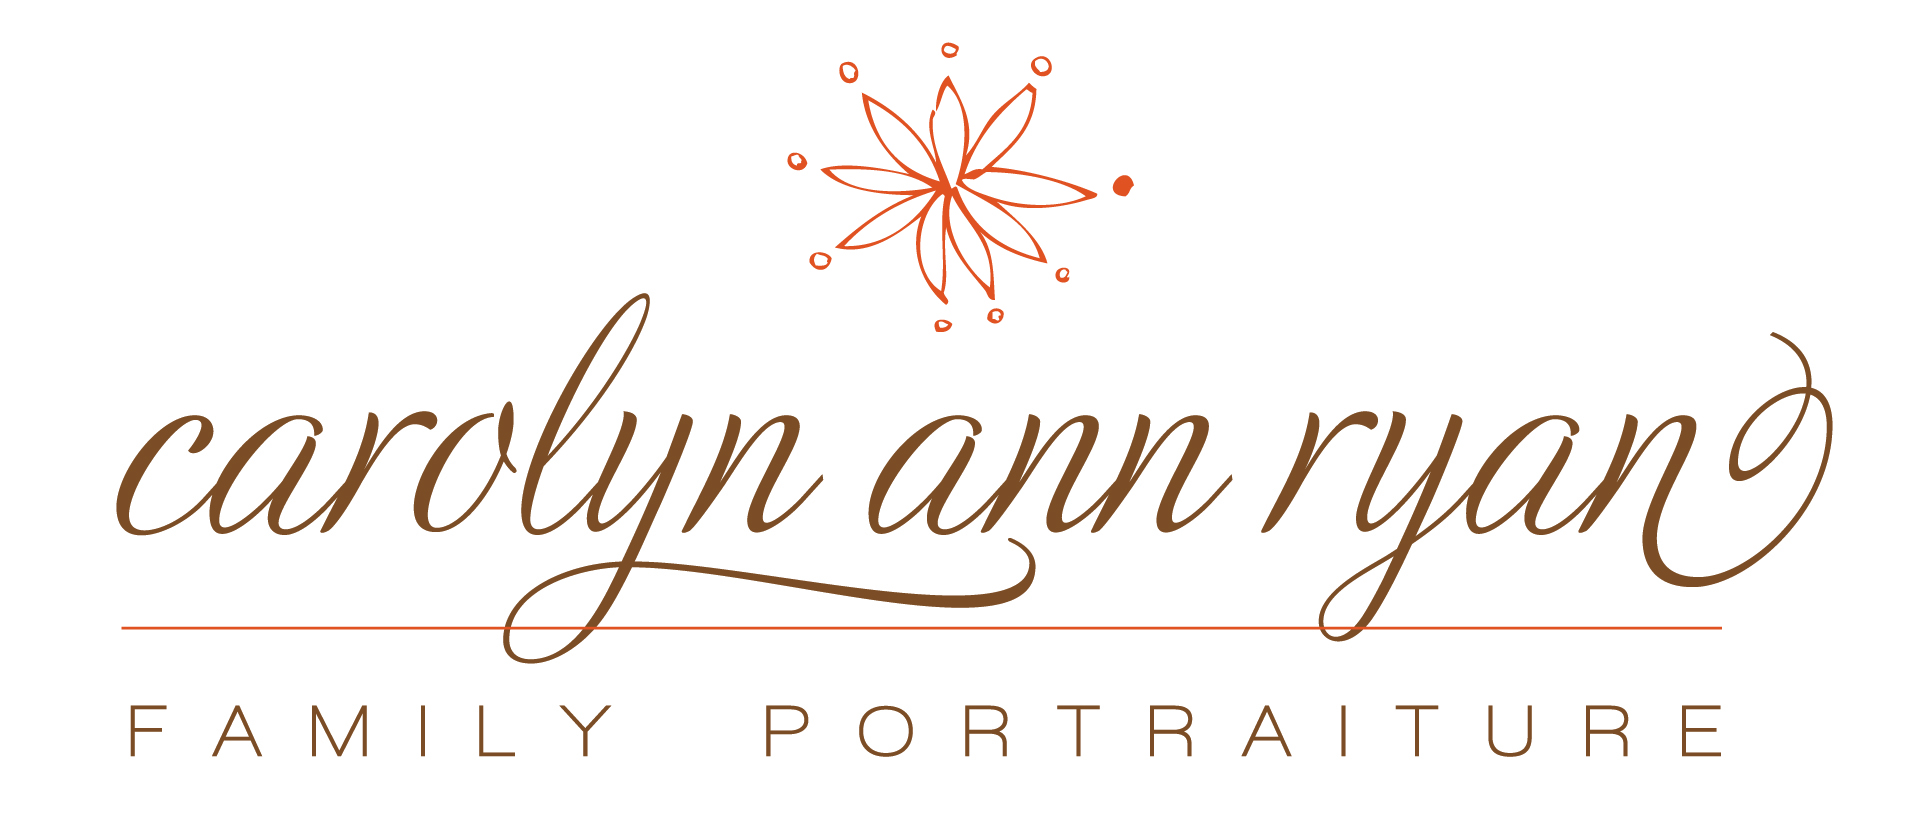 Charlotte Photographer, Carolyn Ann Ryan, specializing in Family Portraits